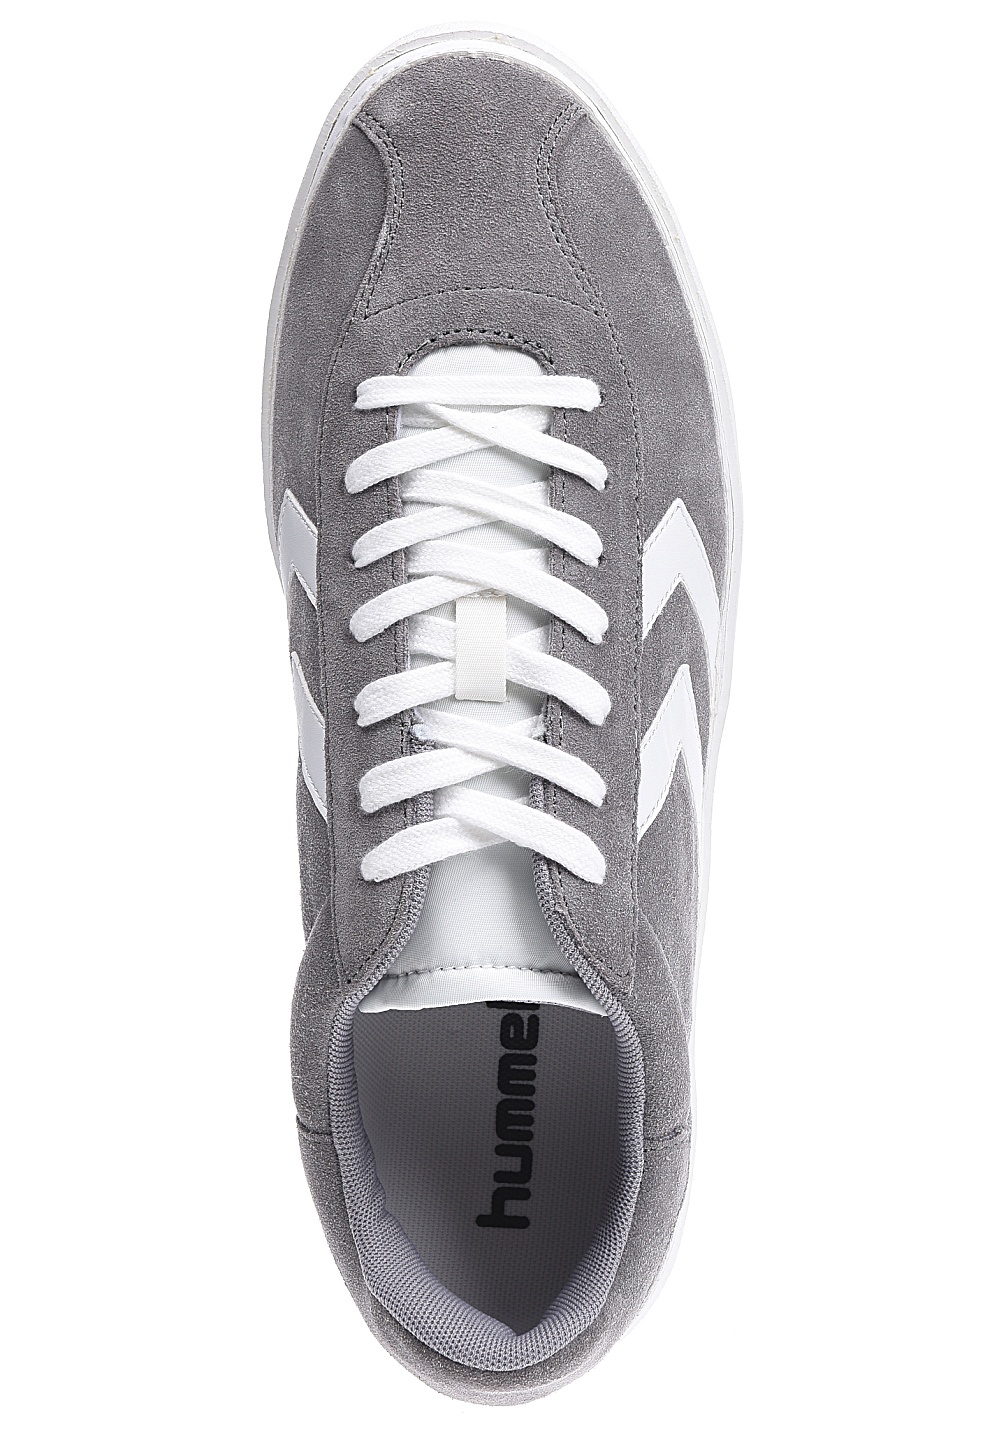 Suede Sports Planet Hummel Diamant Baskets Gris bf76Ygyv